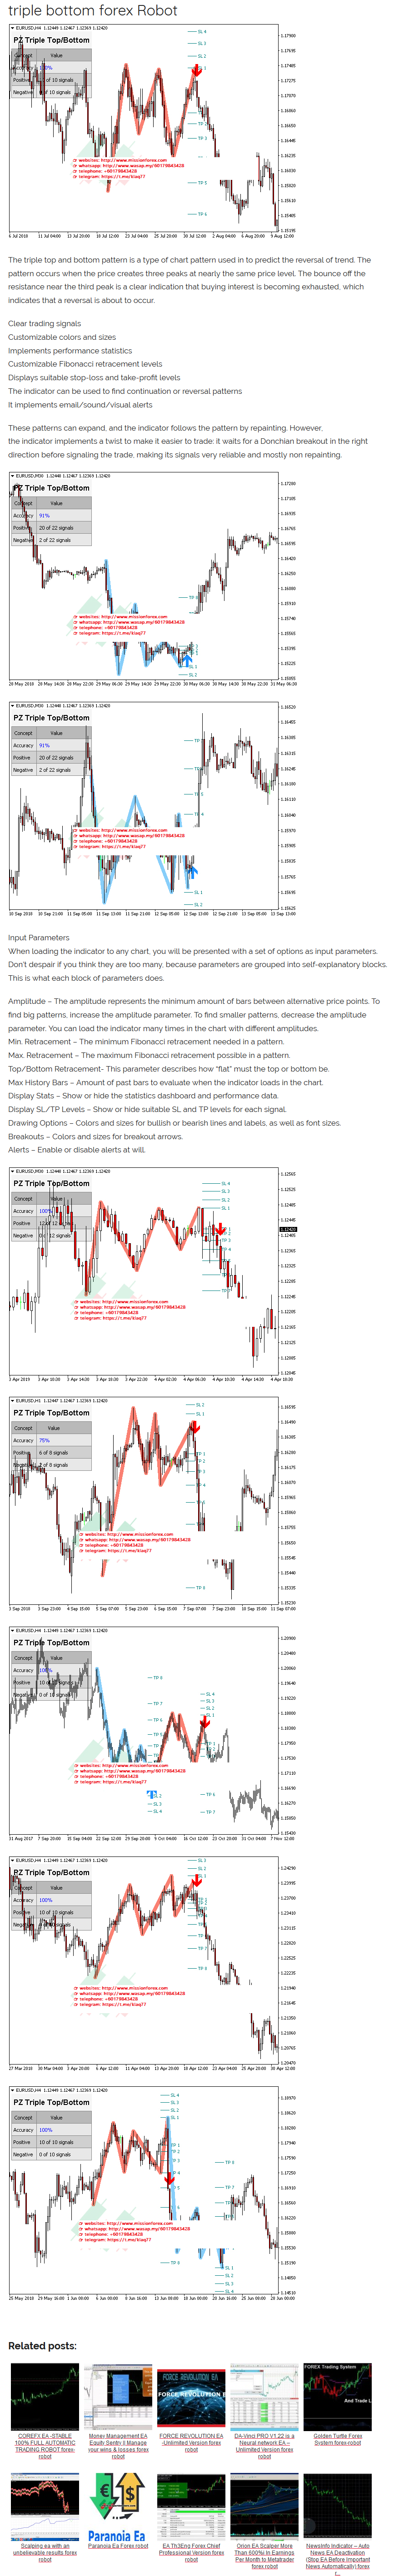 triple bottom forex Robot - automated trading forex system expert advisor